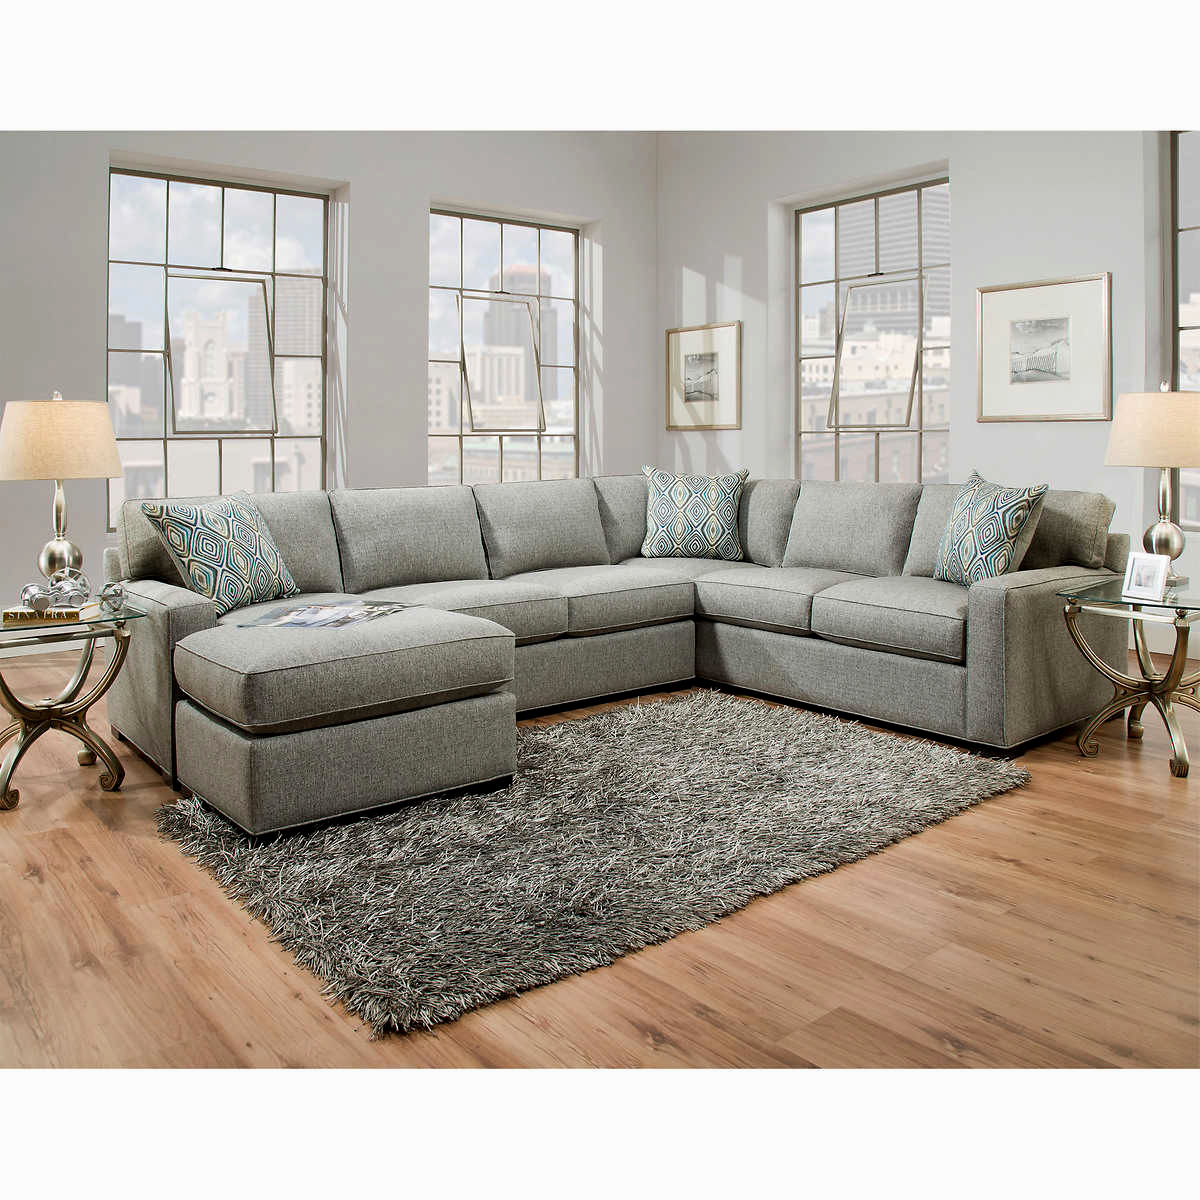 Costco Living Room Chairs: Best Of Costco Furniture Sofas Wallpaper